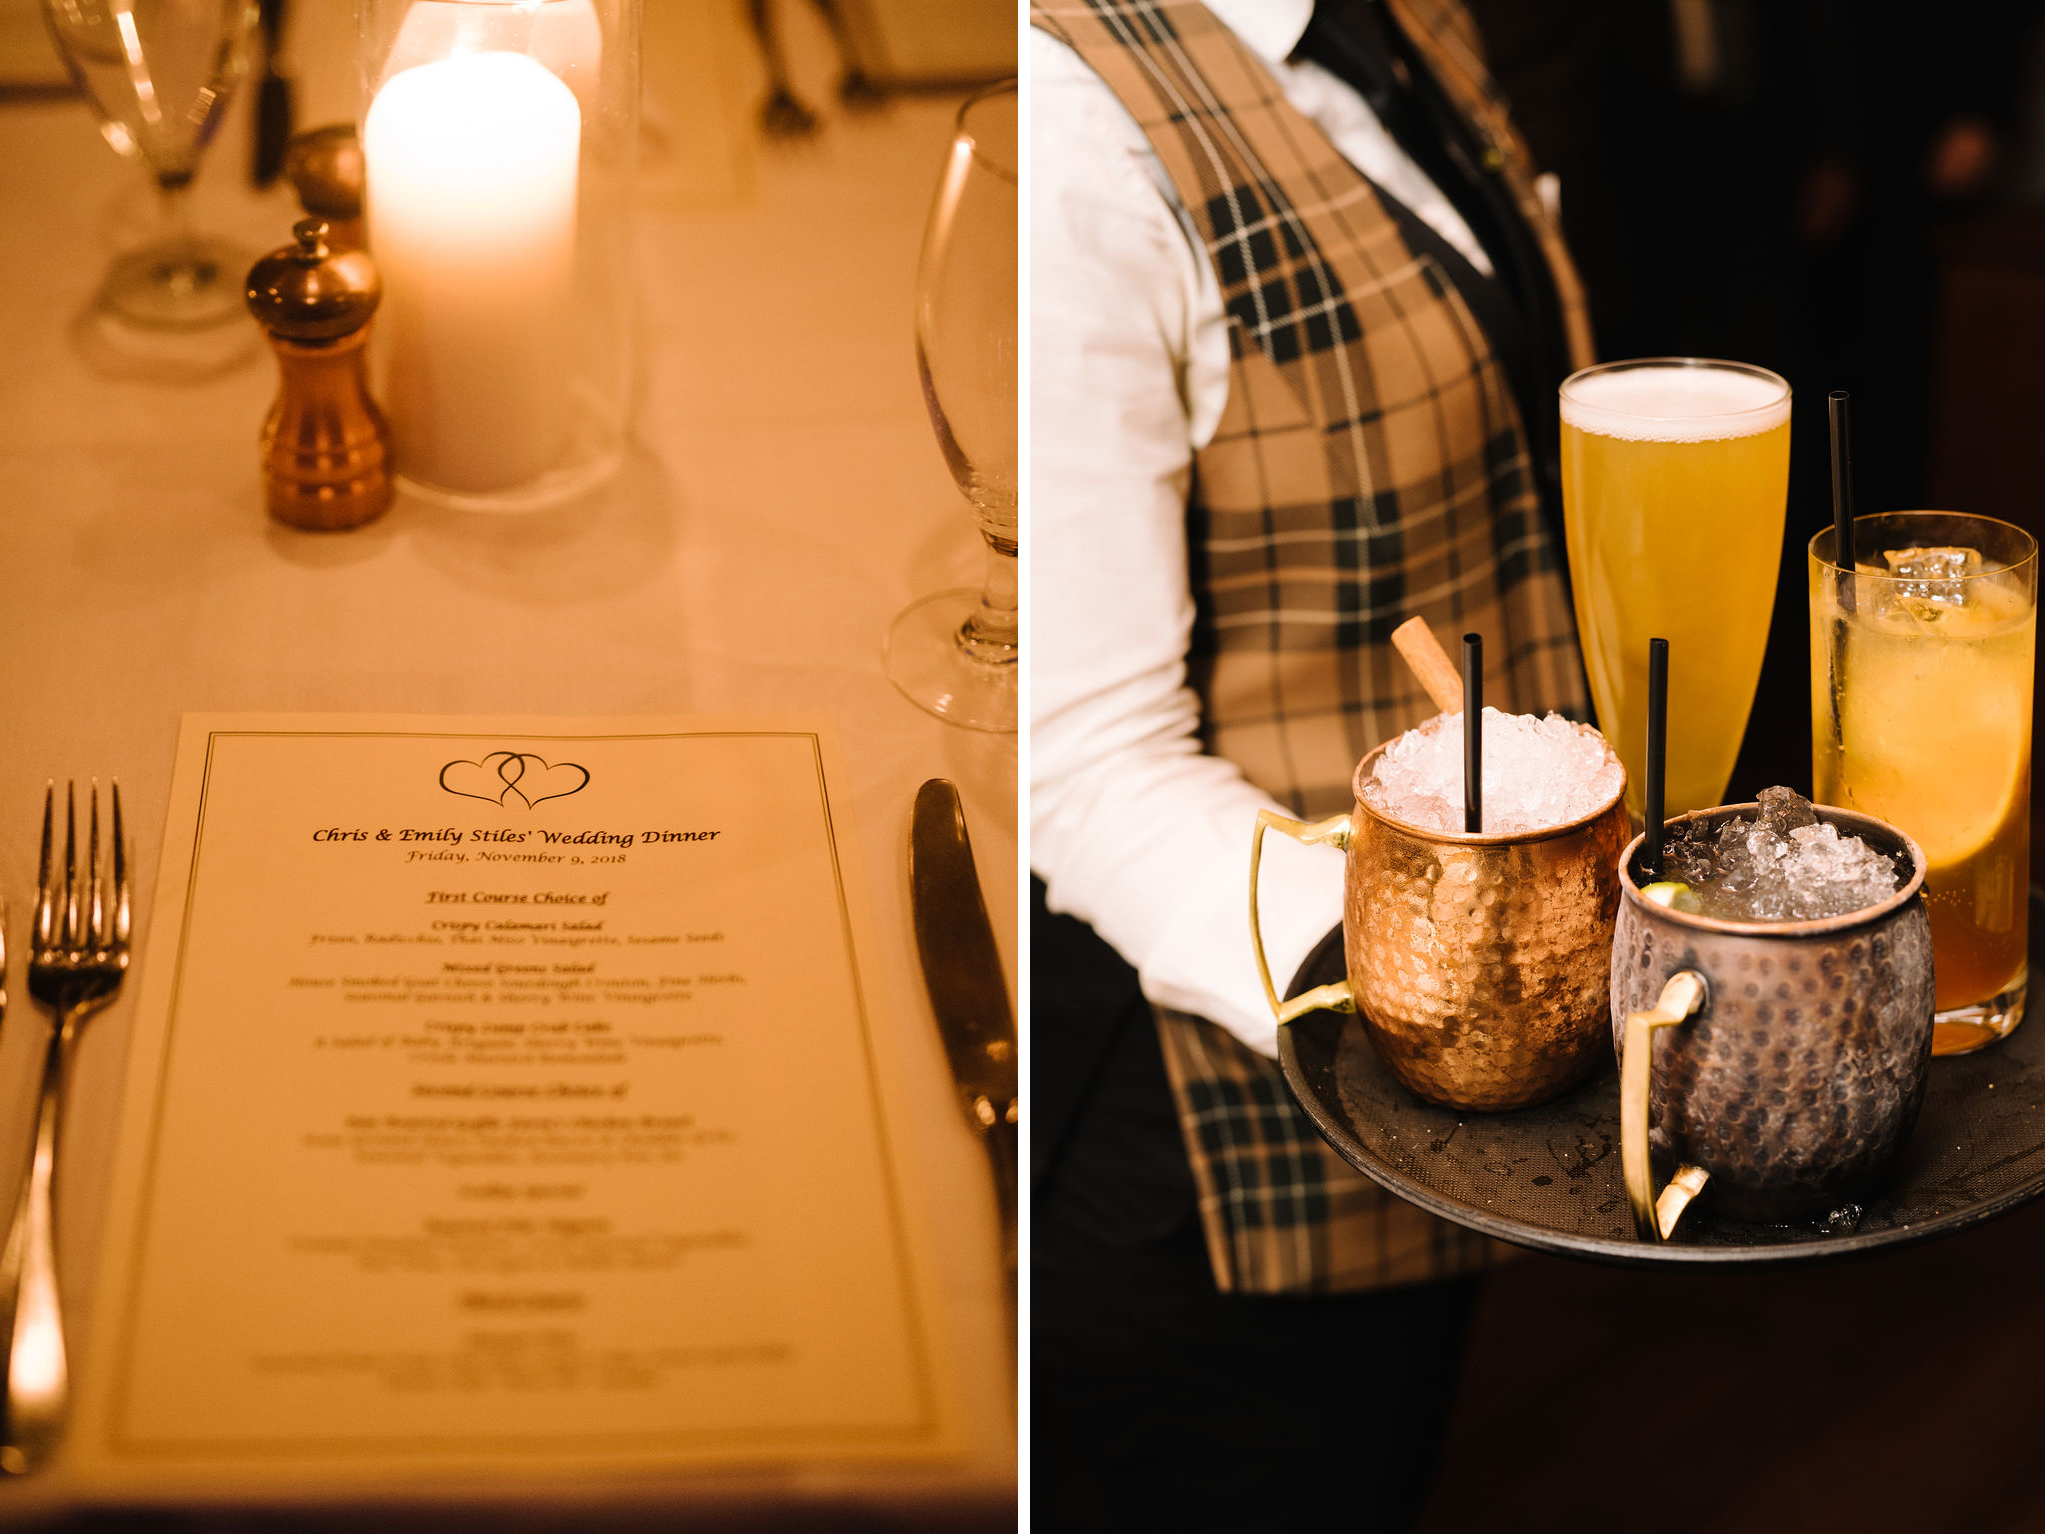 Emily and Chris- Intimate Restaurant Elopement- Tablescape Menus Drinks- Olivia Christina Photo.jpg